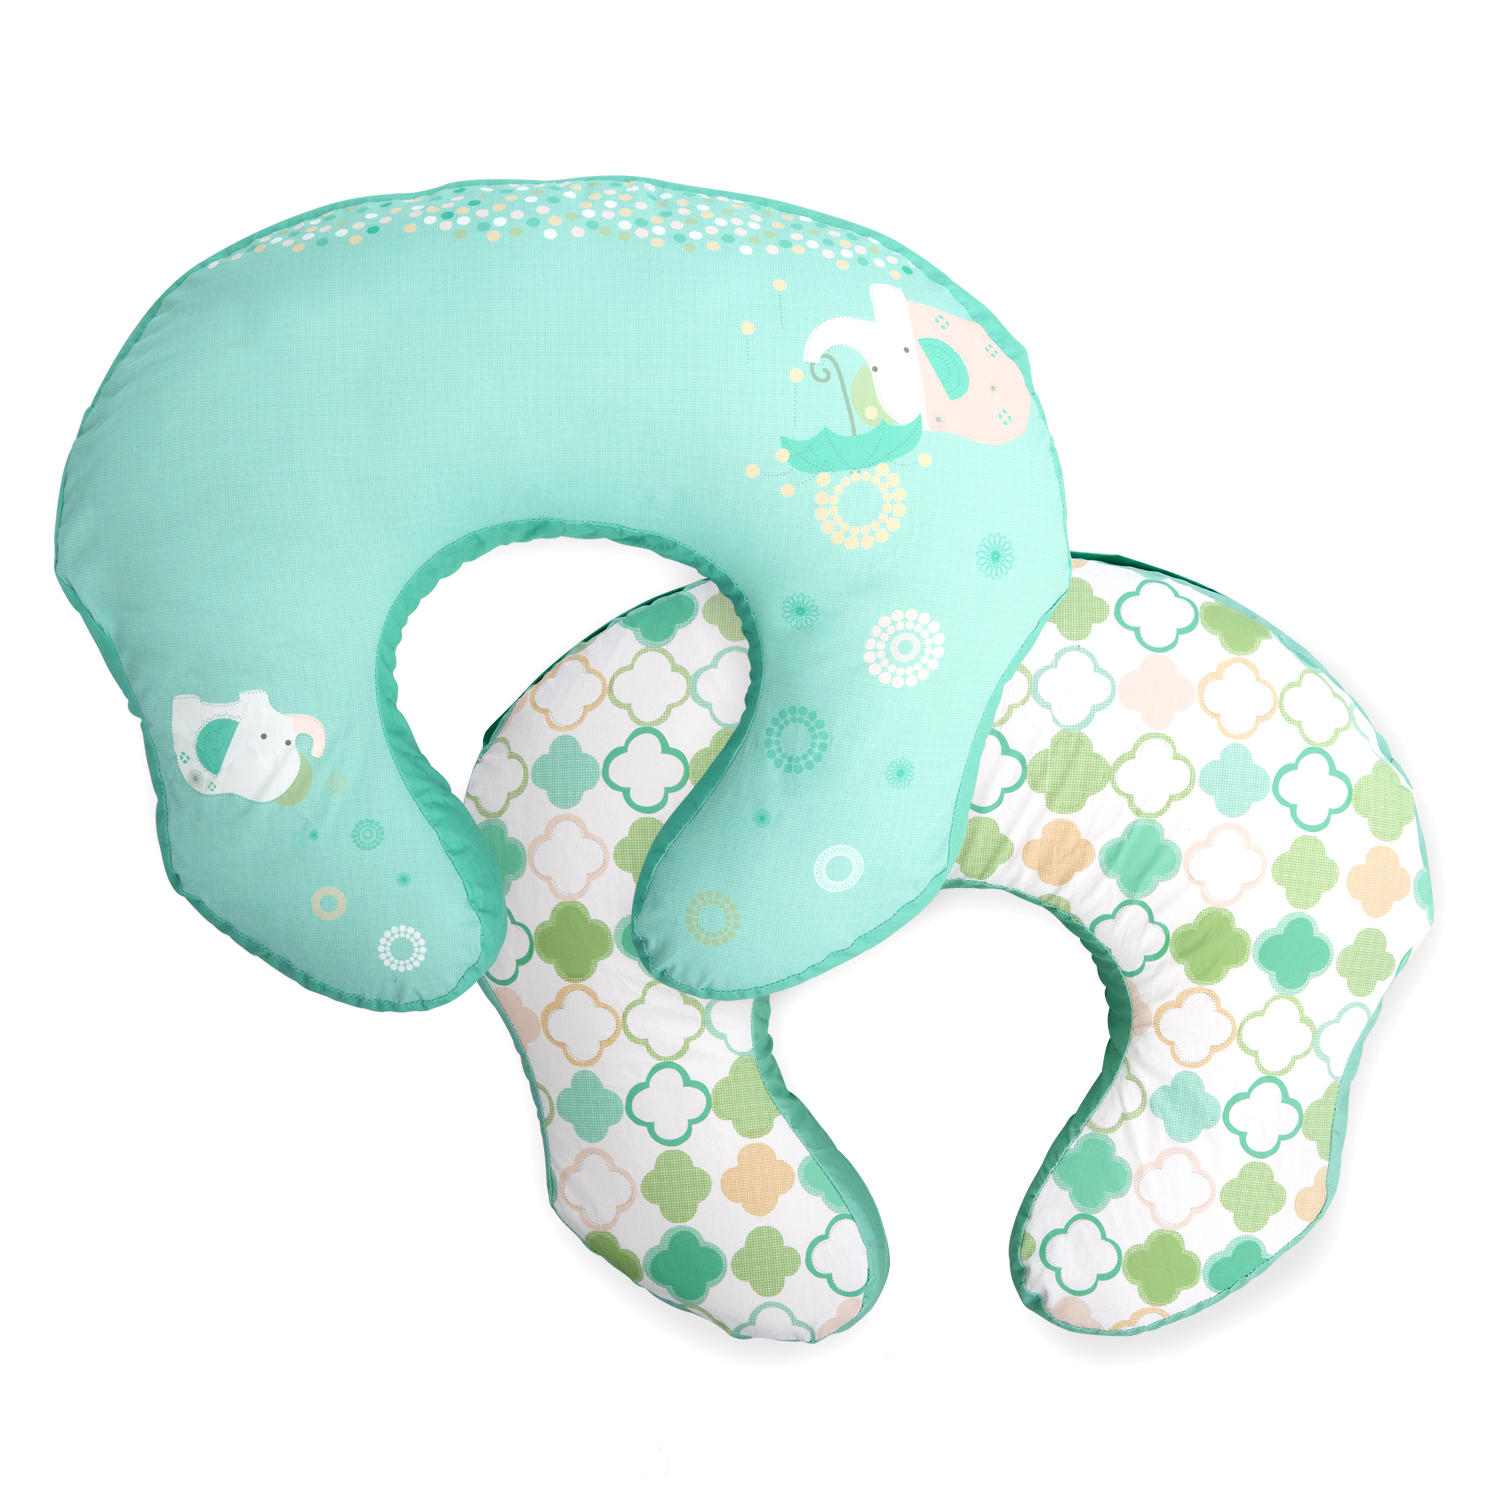 mombo™ Nursing Pillow Slipcover - Jubilee Showers™